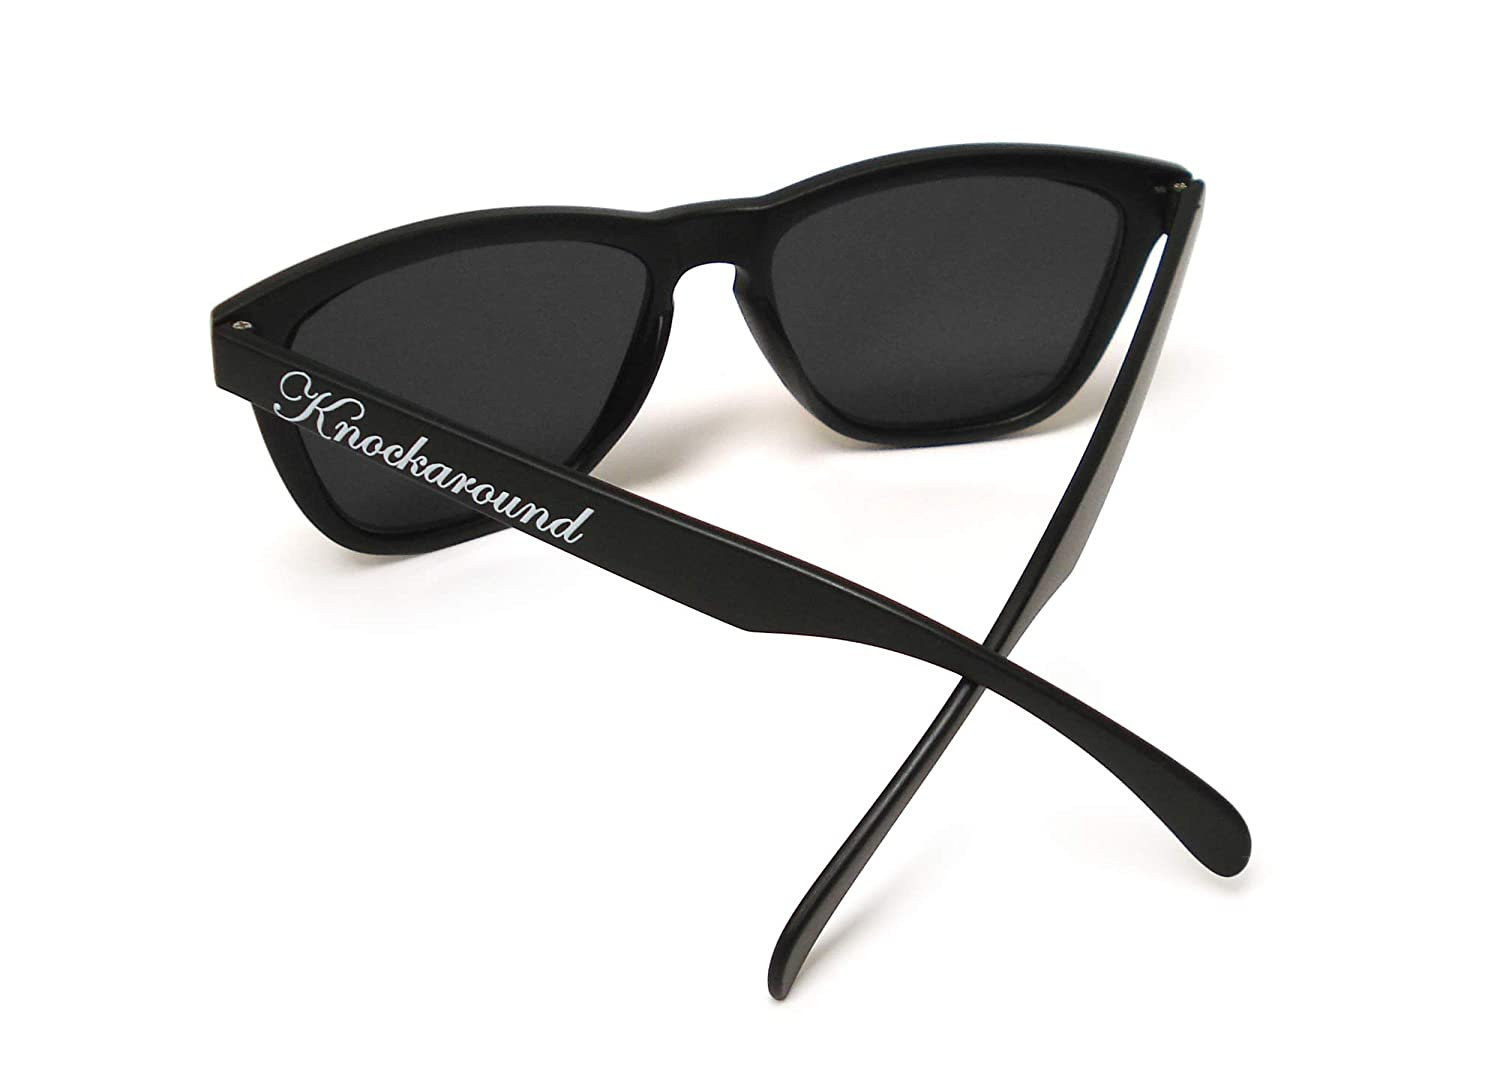 a9e9878dd73 Amazon.com  Knockaround Classics Polarized Sunglasses With Matte Black  Frames Blue Reflective Lenses  Clothing